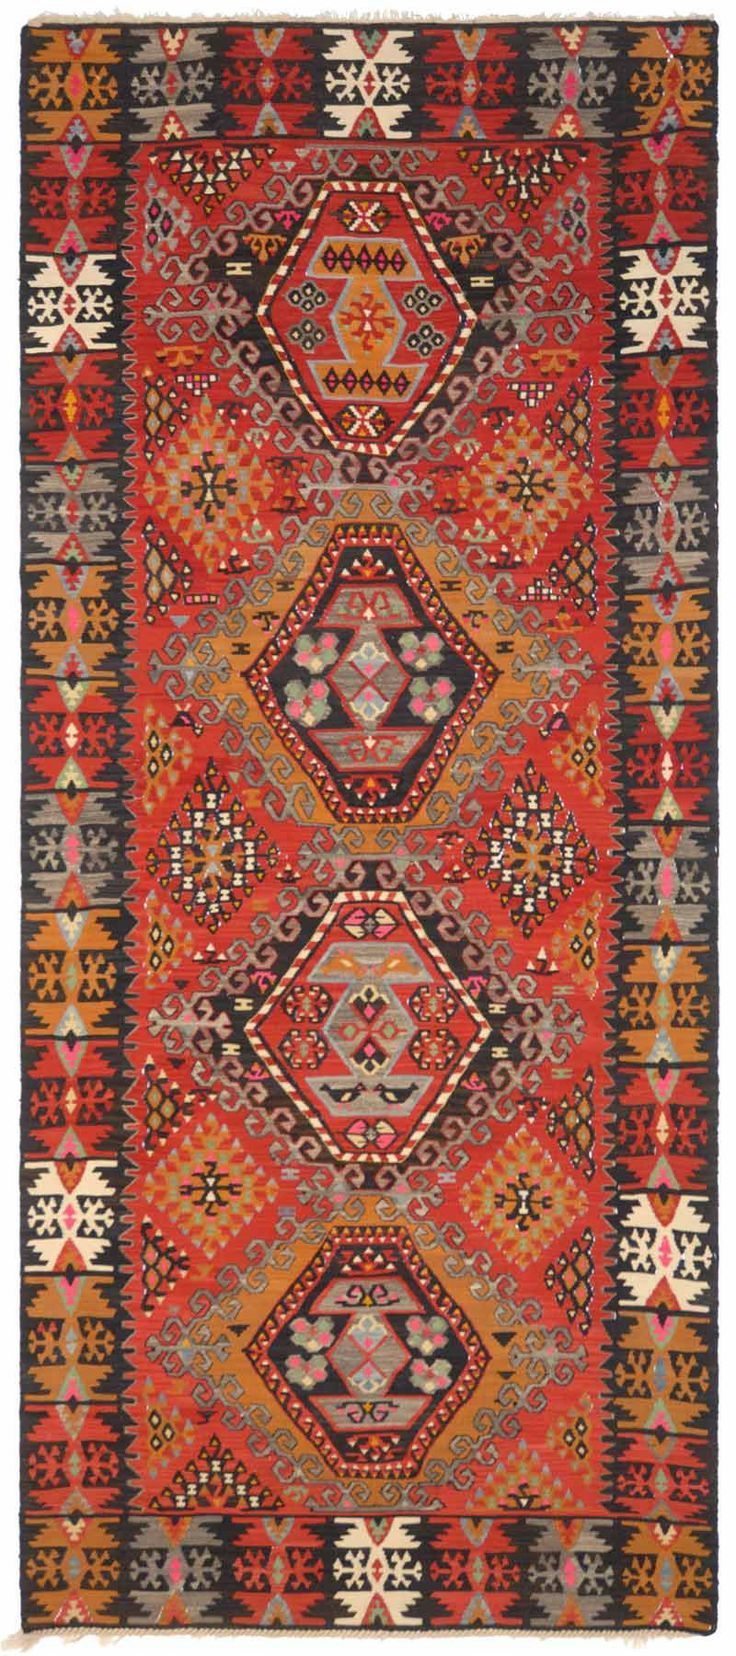 Rugs And Kilims Are The Master Elements Of Bohemian Style: 657 Best Kilim Images On Pinterest